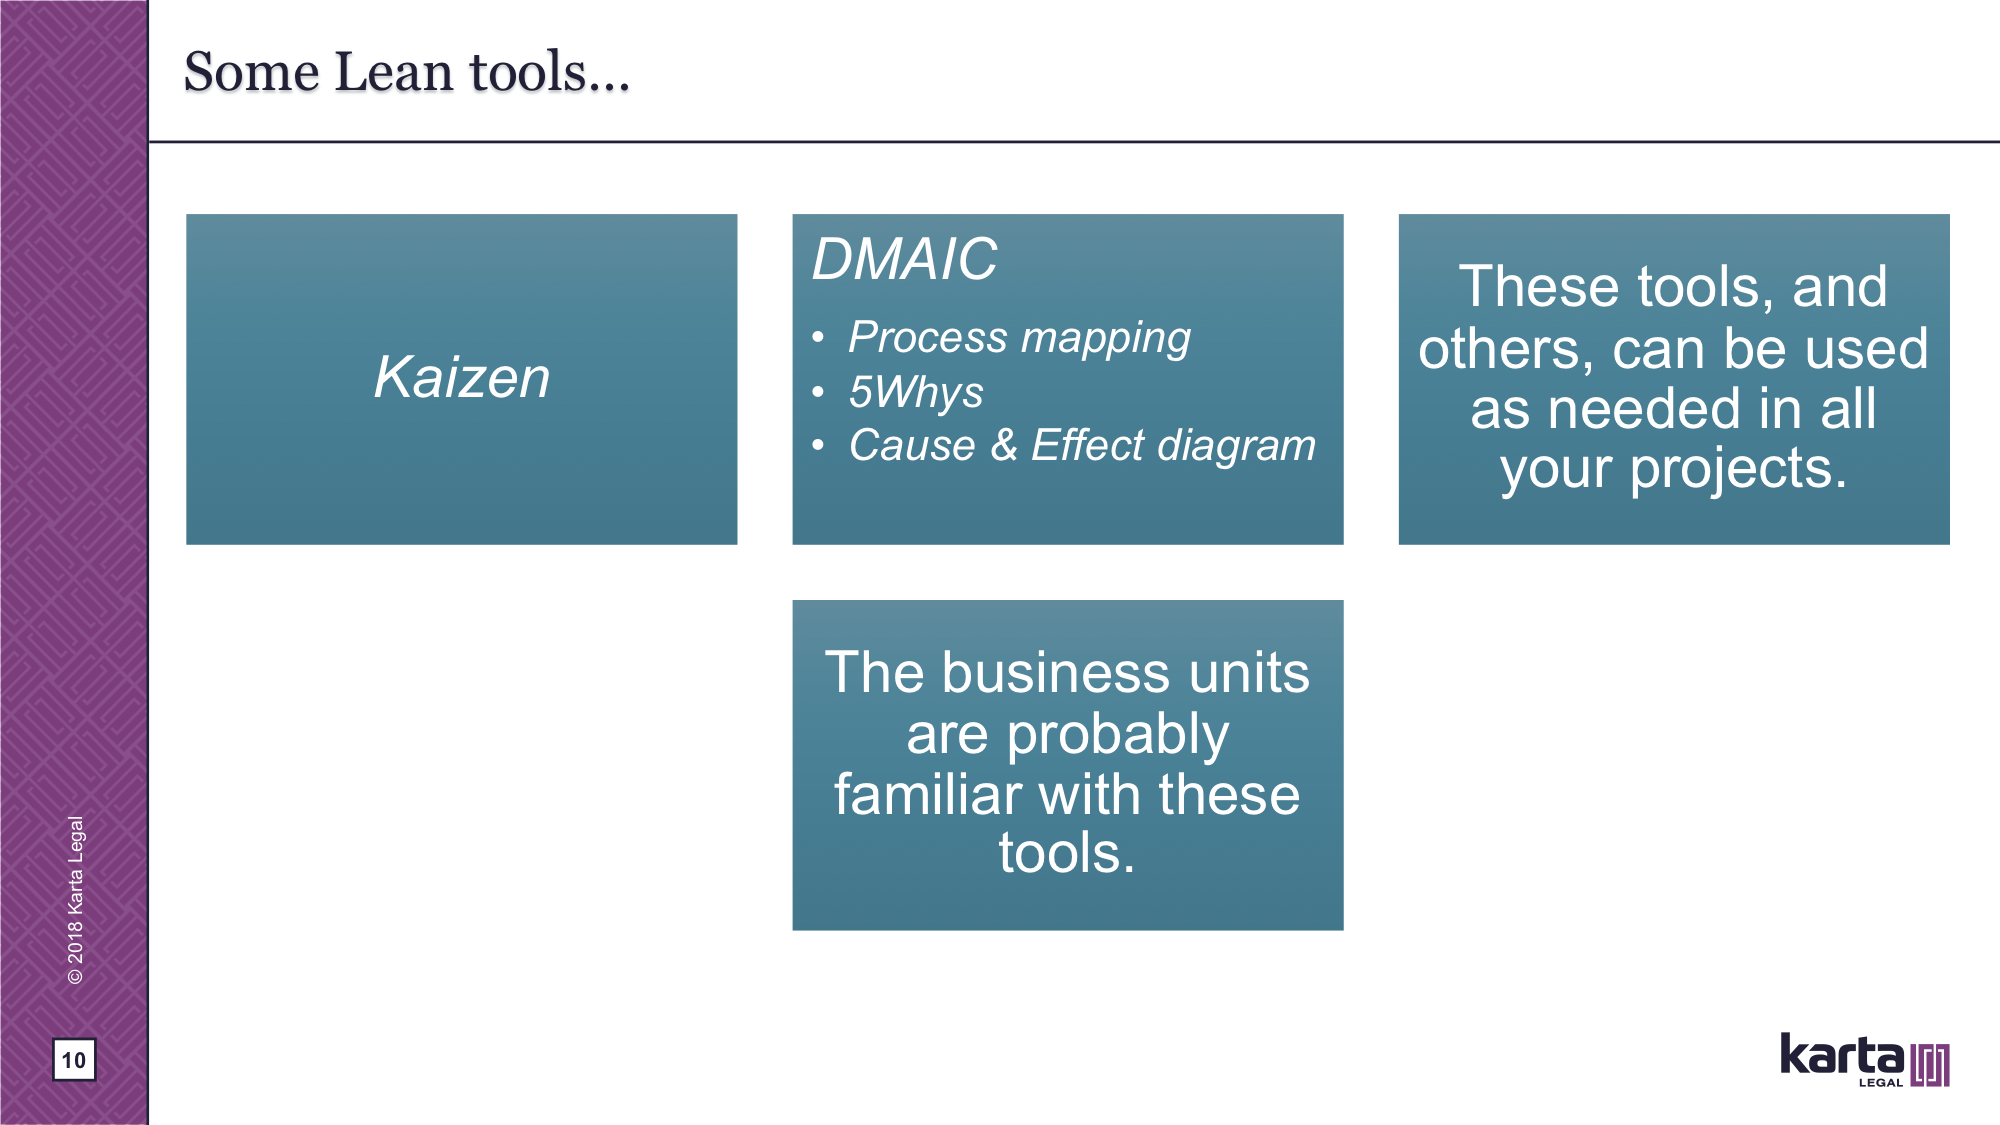 Tools in lean